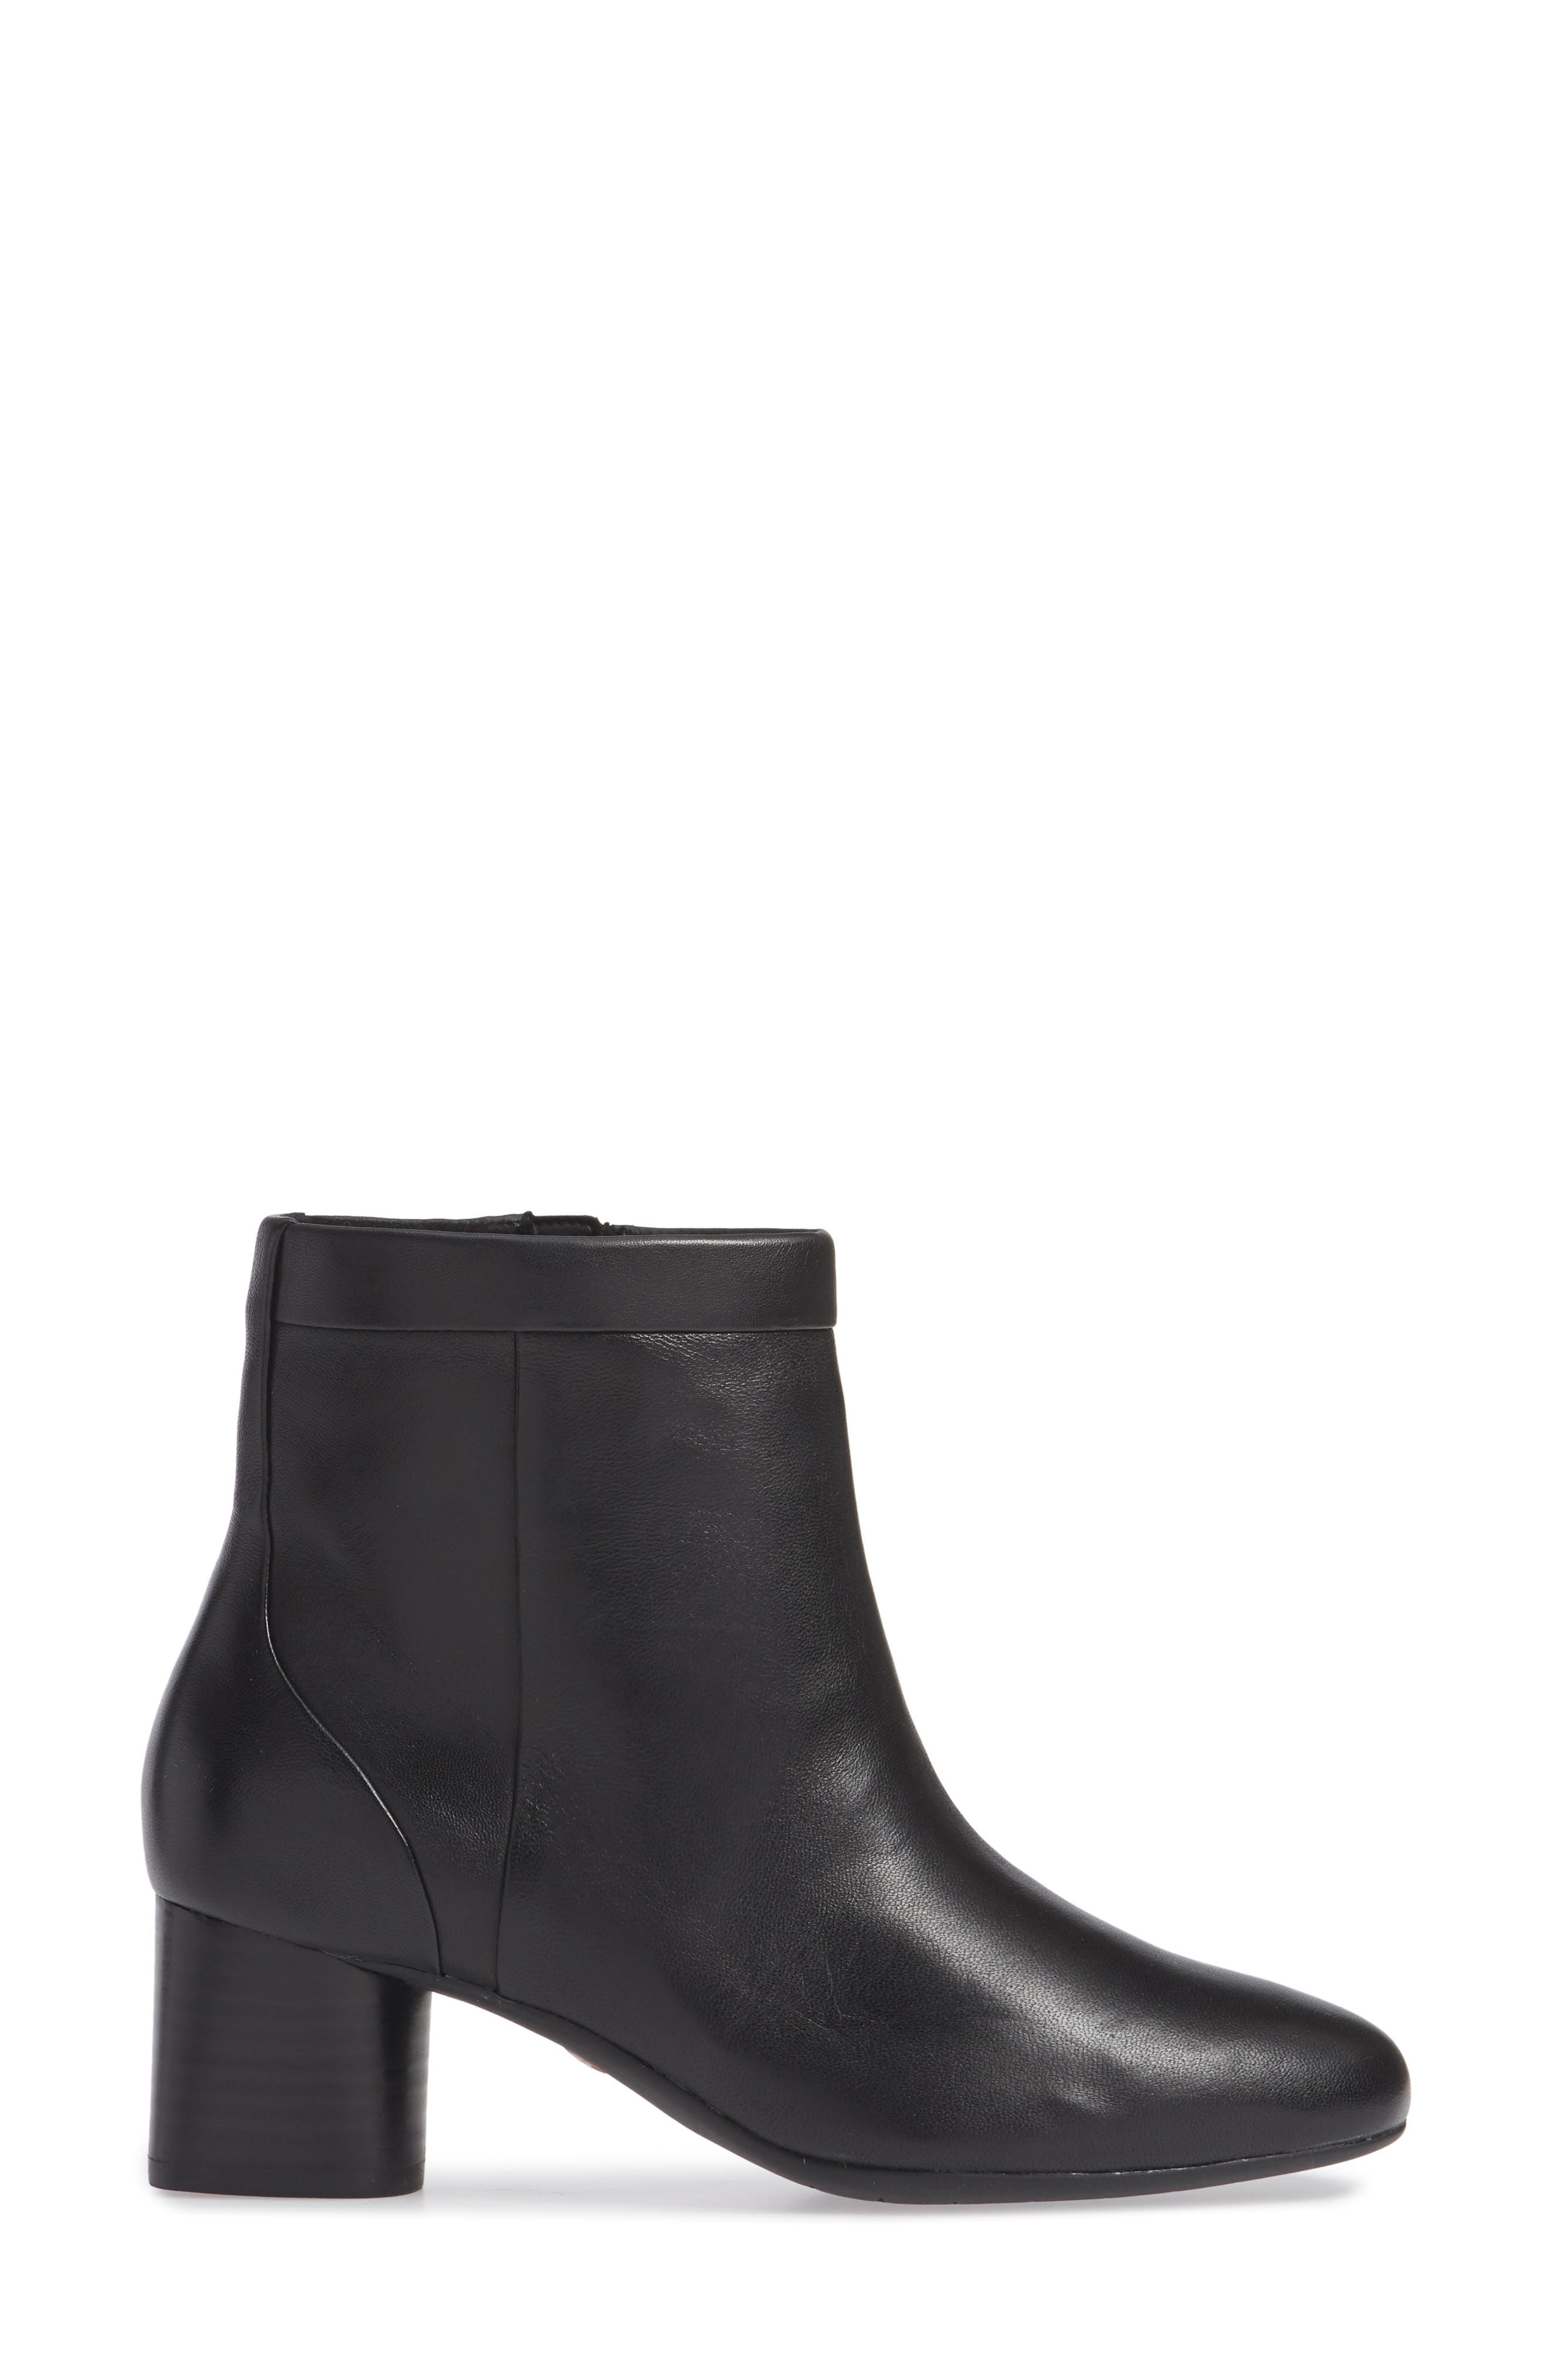 CLARKS<SUP>®</SUP>, Un Cosmo Up Bootie, Alternate thumbnail 3, color, BLACK LEATHER